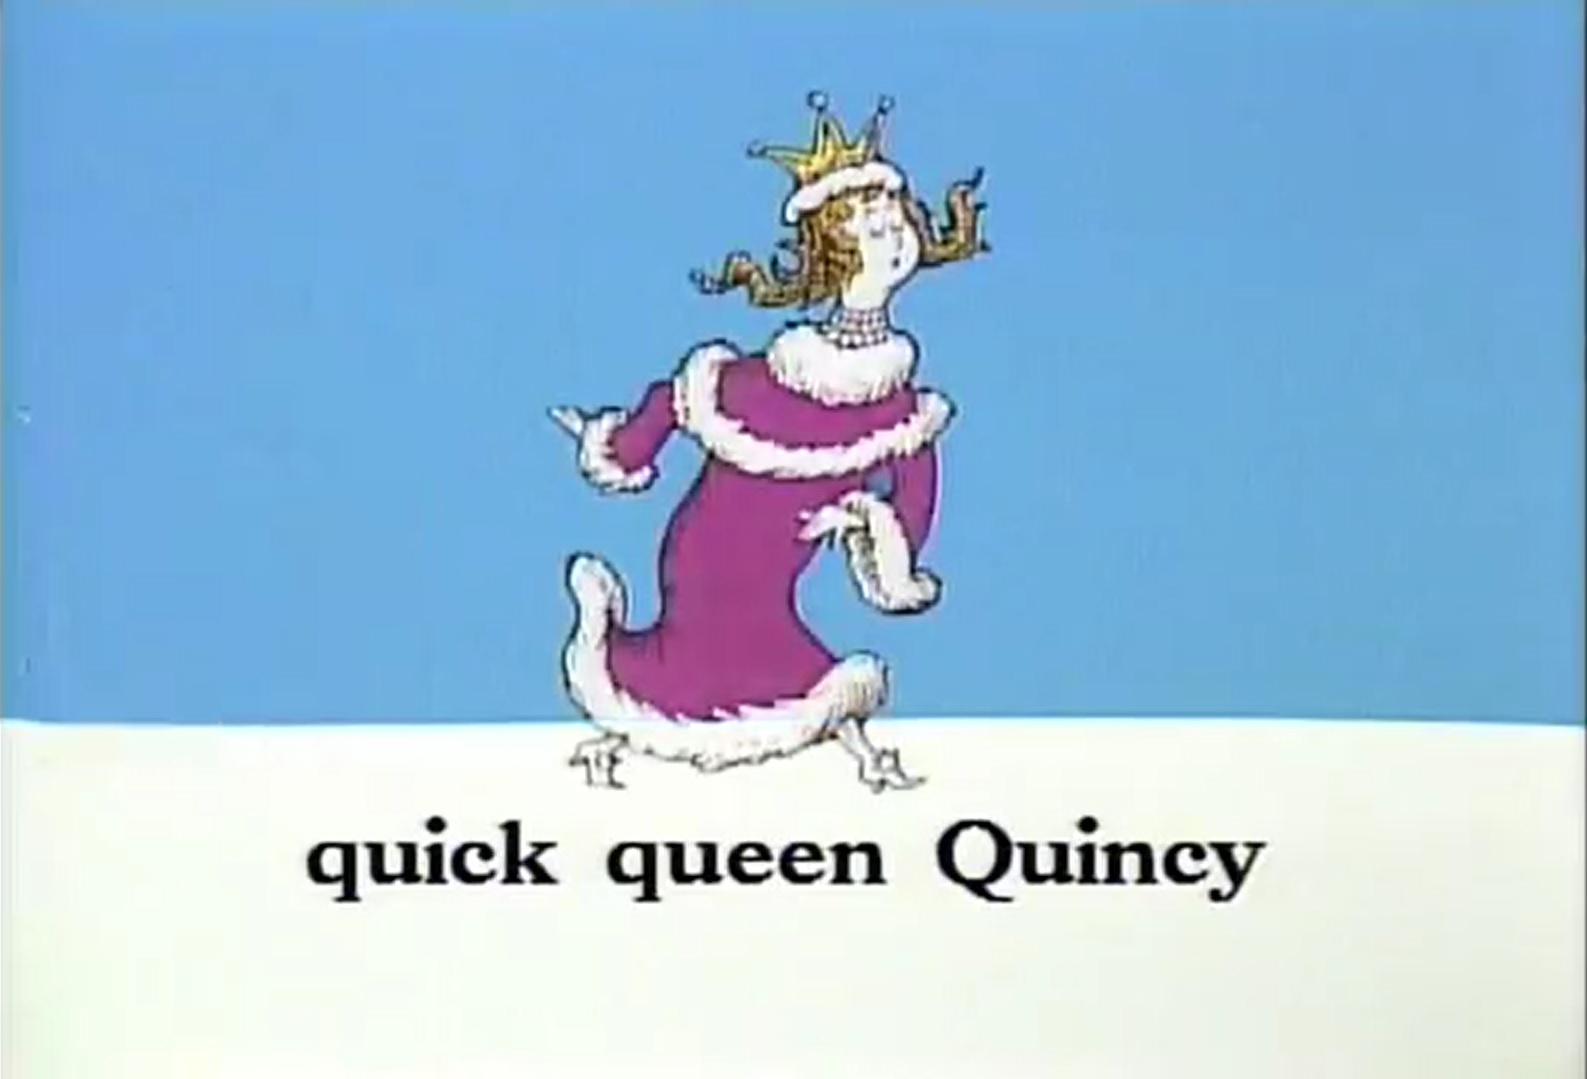 Queen Quinella the quick Queen of Quincy